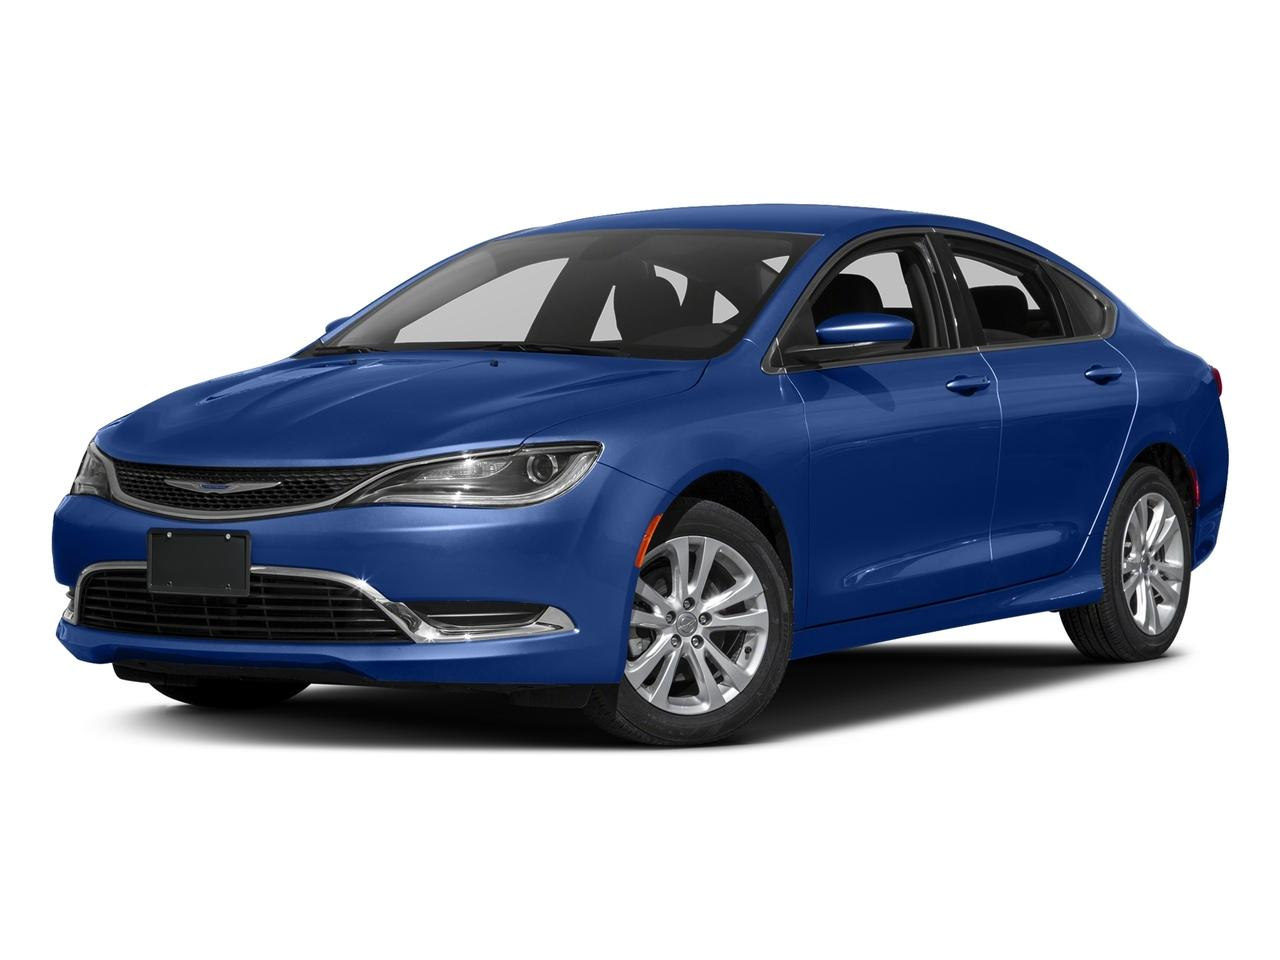 2016 Chrysler 200 Vehicle Photo in Hollywood, MD 20636